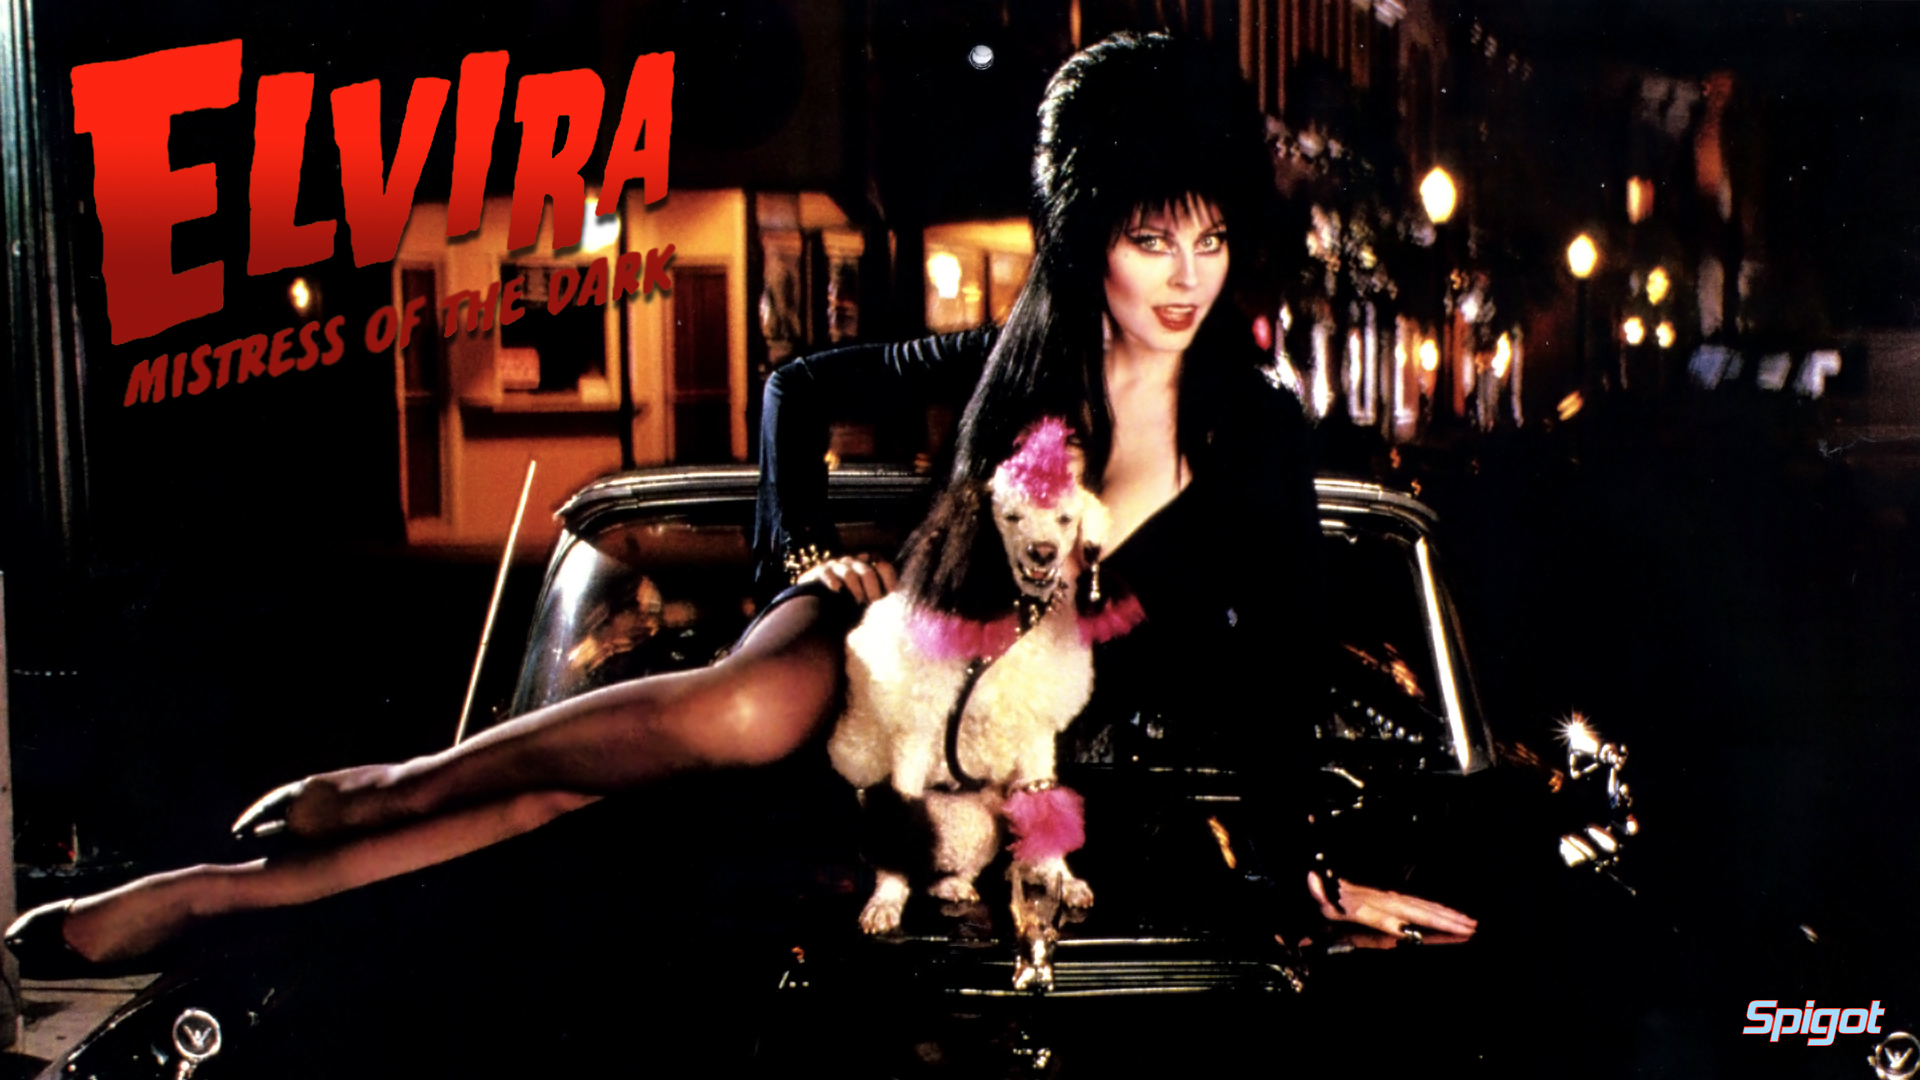 Elvira Mistress of the Dark George Spigots Blog Page 2 1920x1080